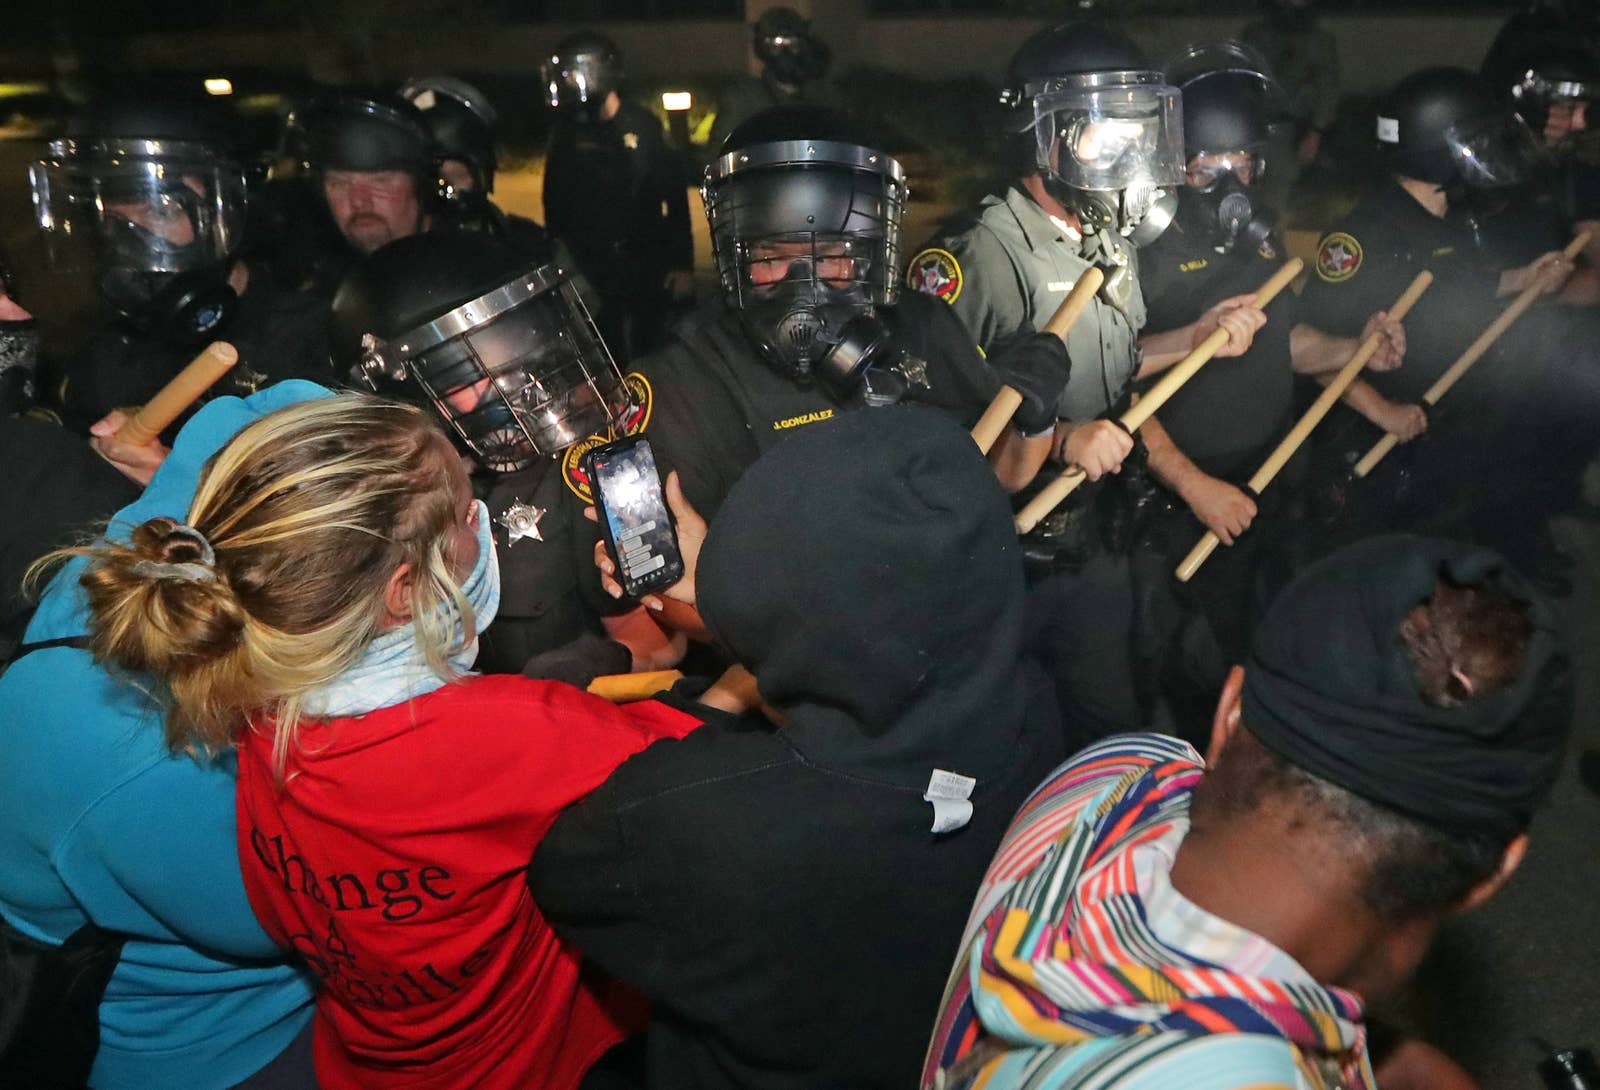 Police use batons to push back a crowd